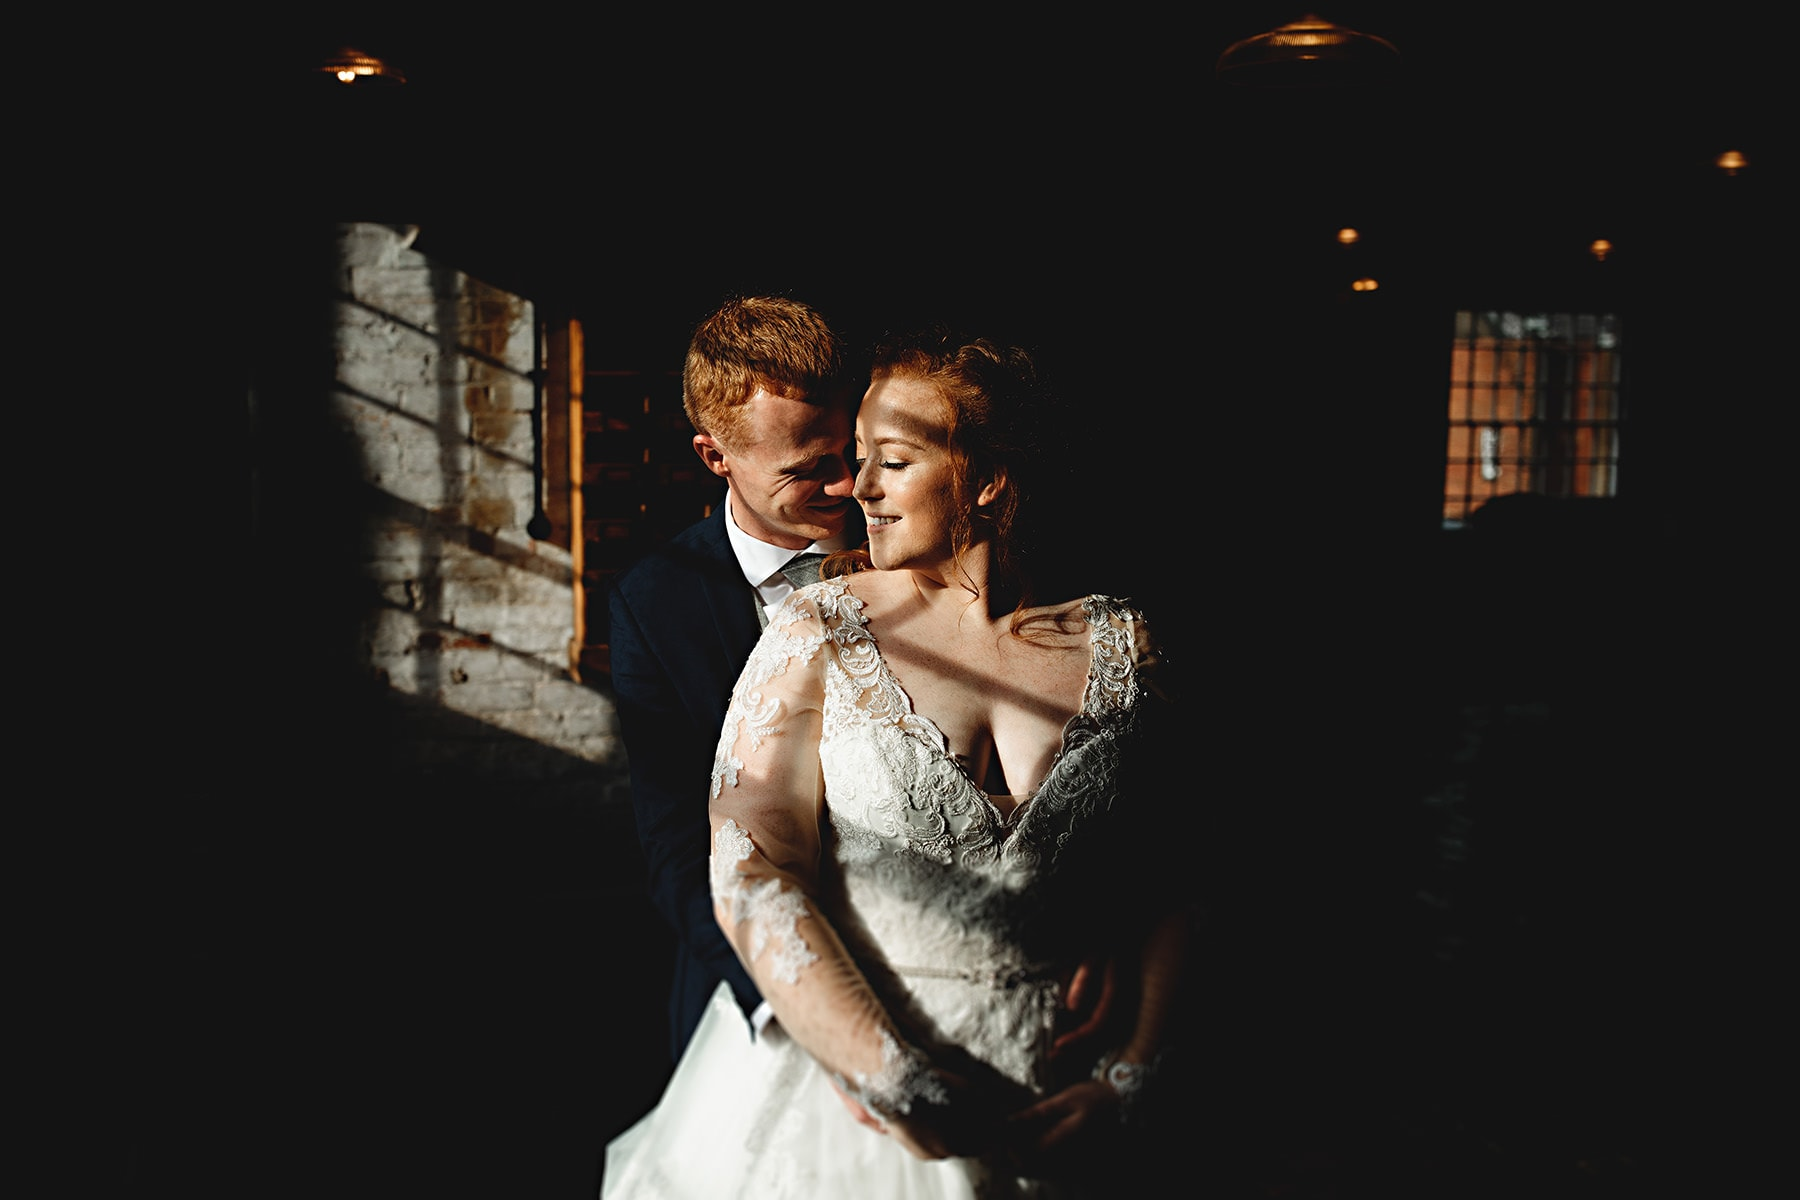 the bride and groom stood in contrasty light at The West Mill in Derbyshire